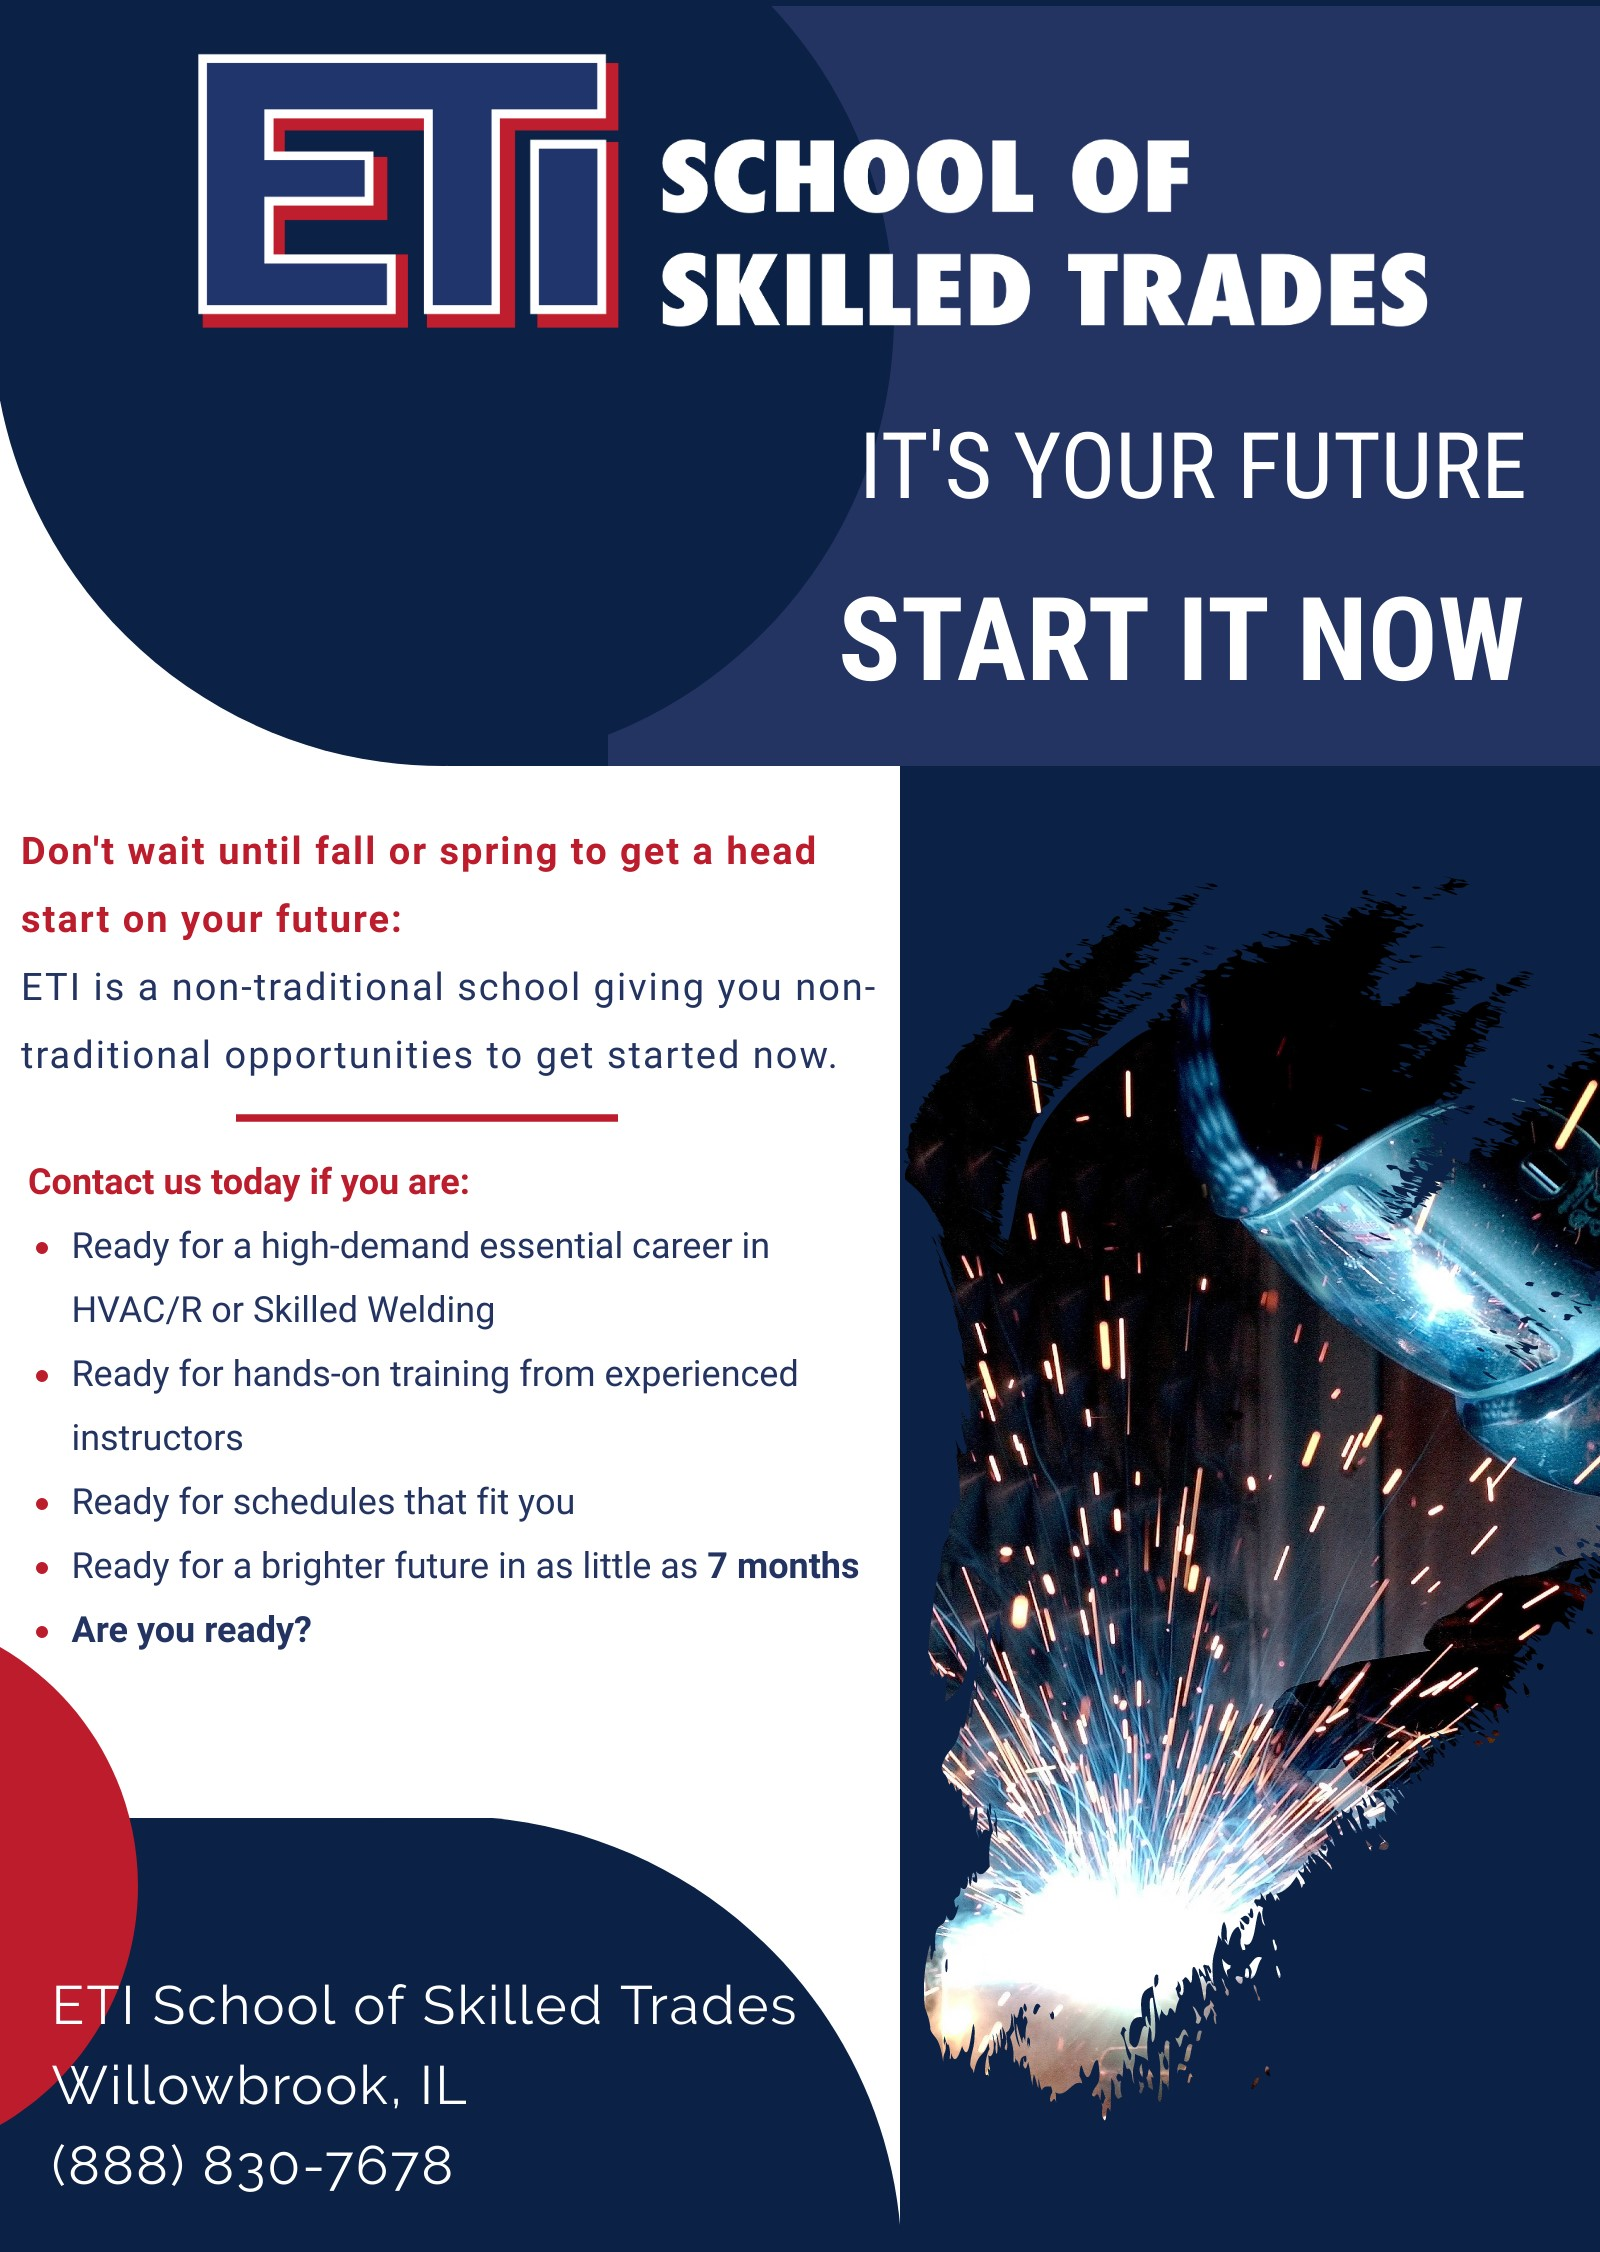 ETI School of Skilled Trades | Welding & HVAC/R Programs Enrolling Now. Contact ETI at (888) 830-7678 for more information on our programs.